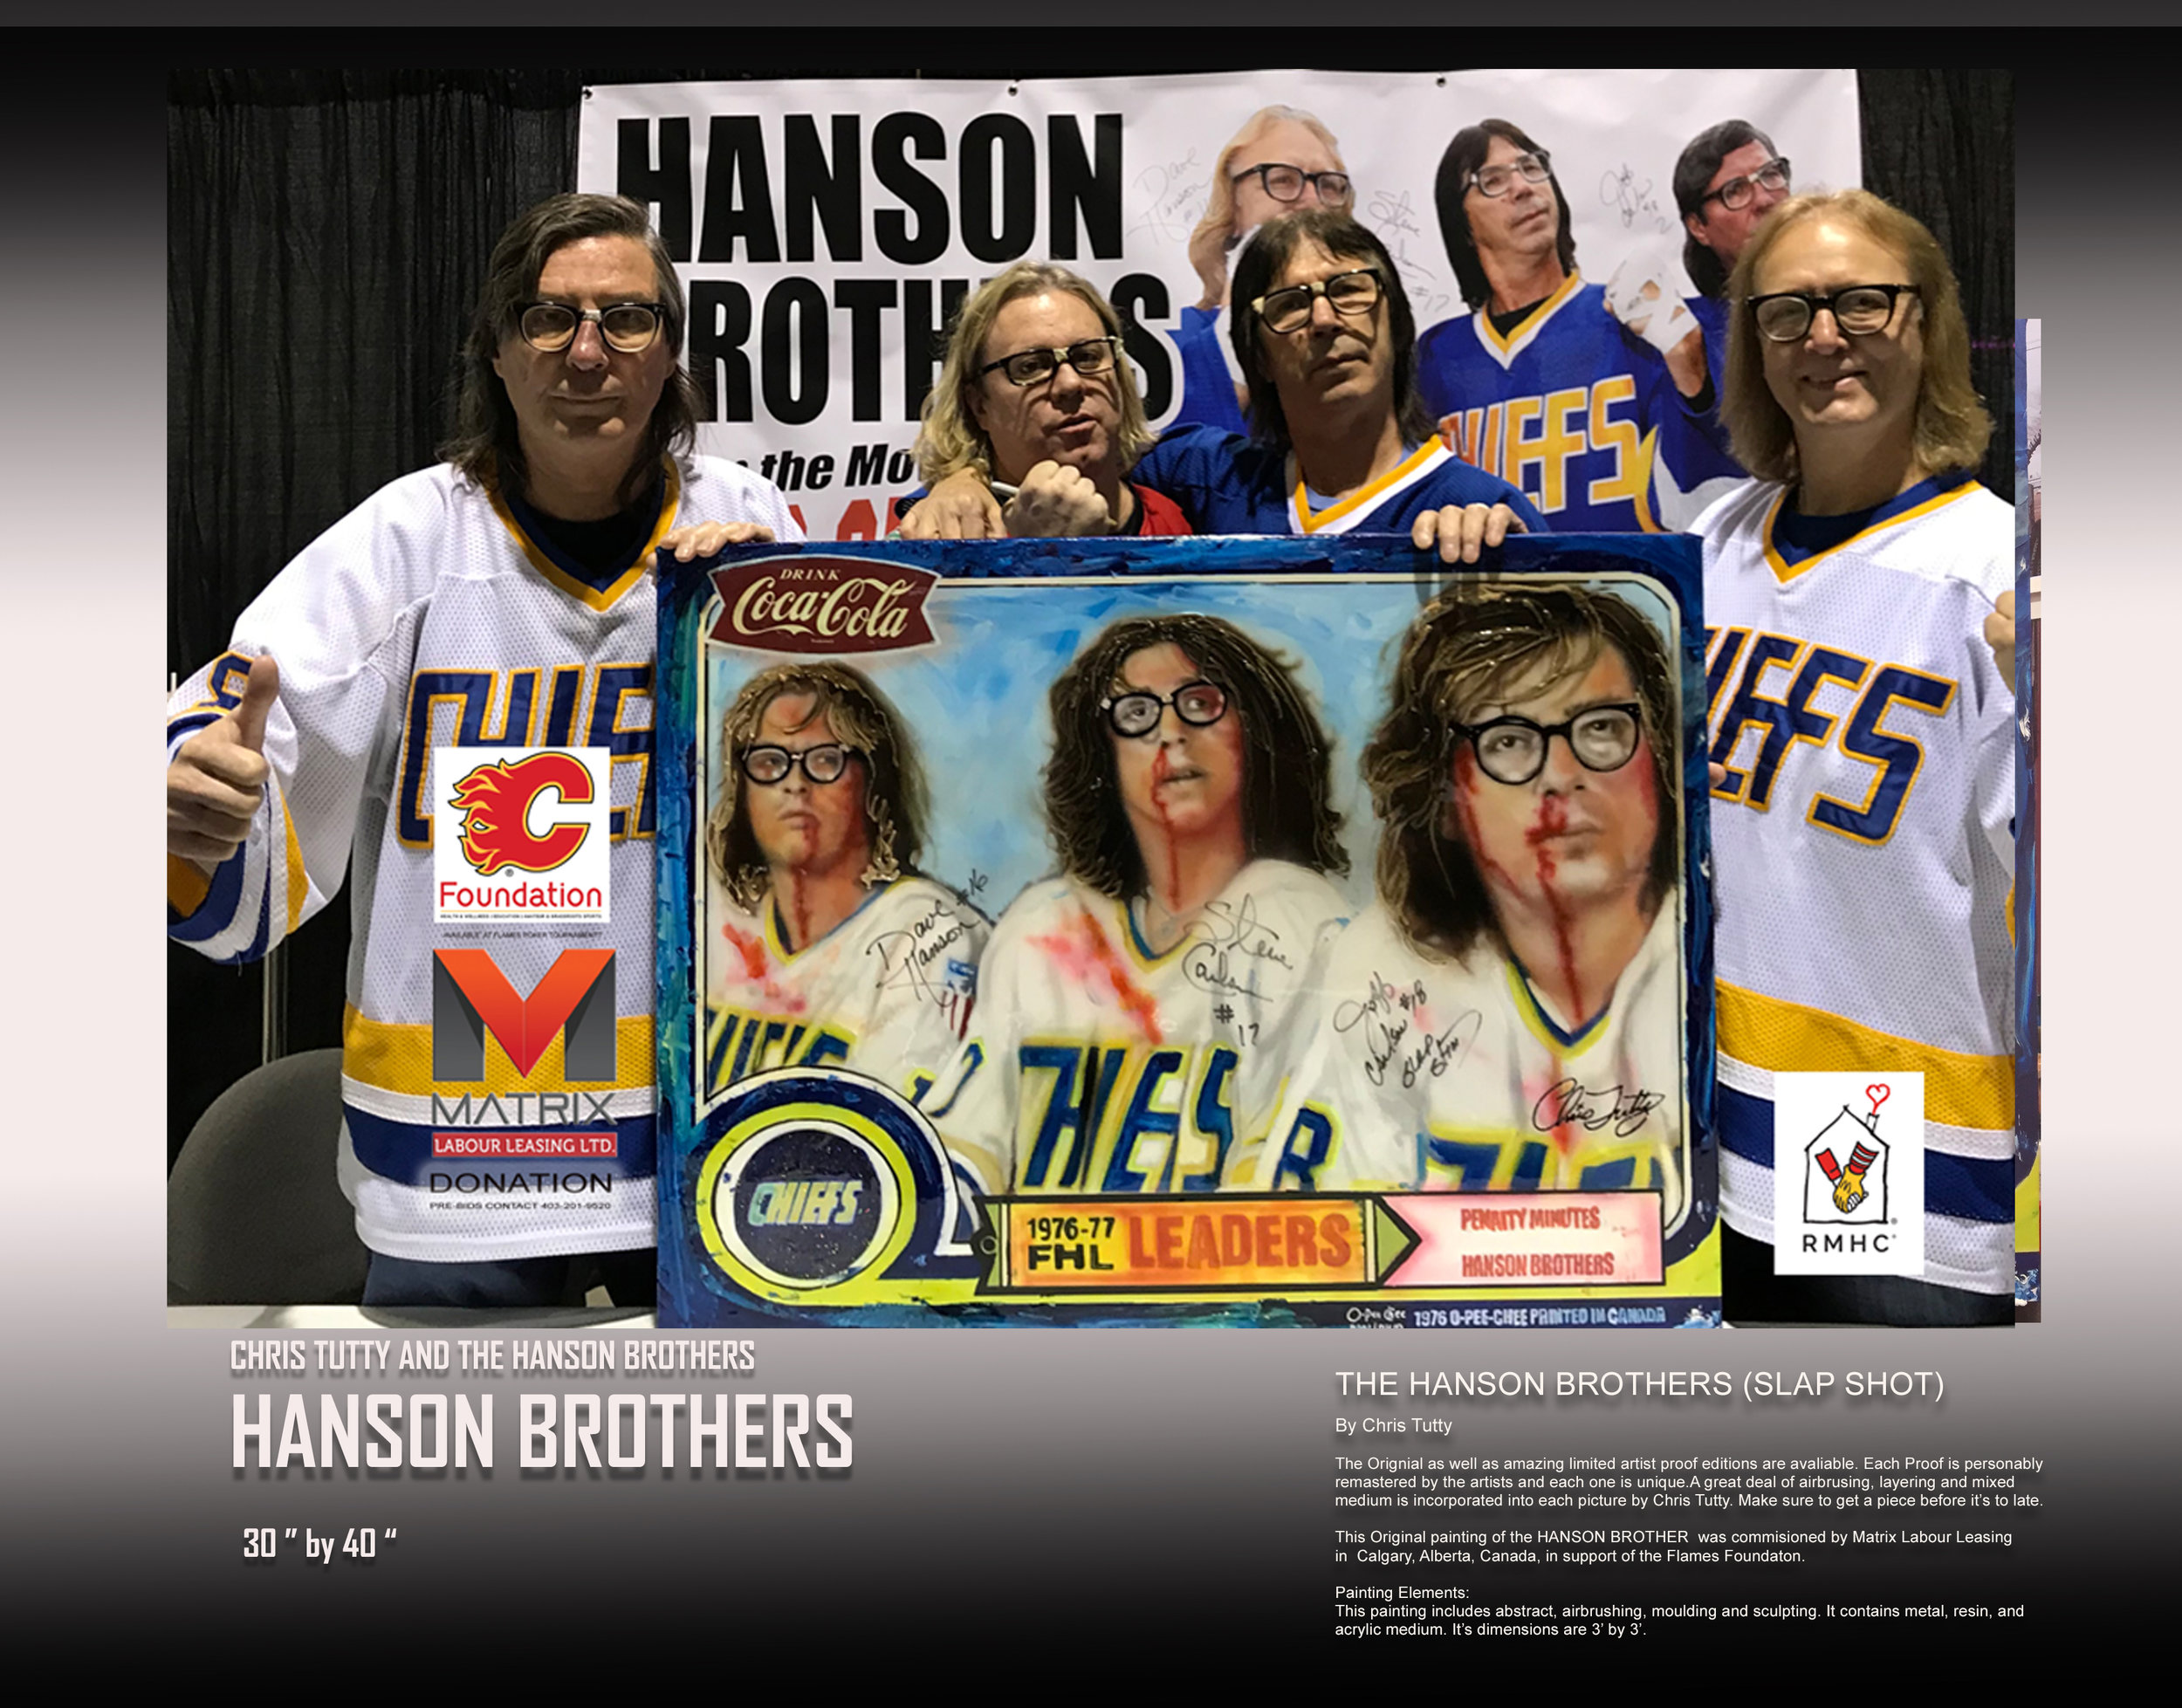 Hanson brothers Celebrity signed art by Chris Tutty